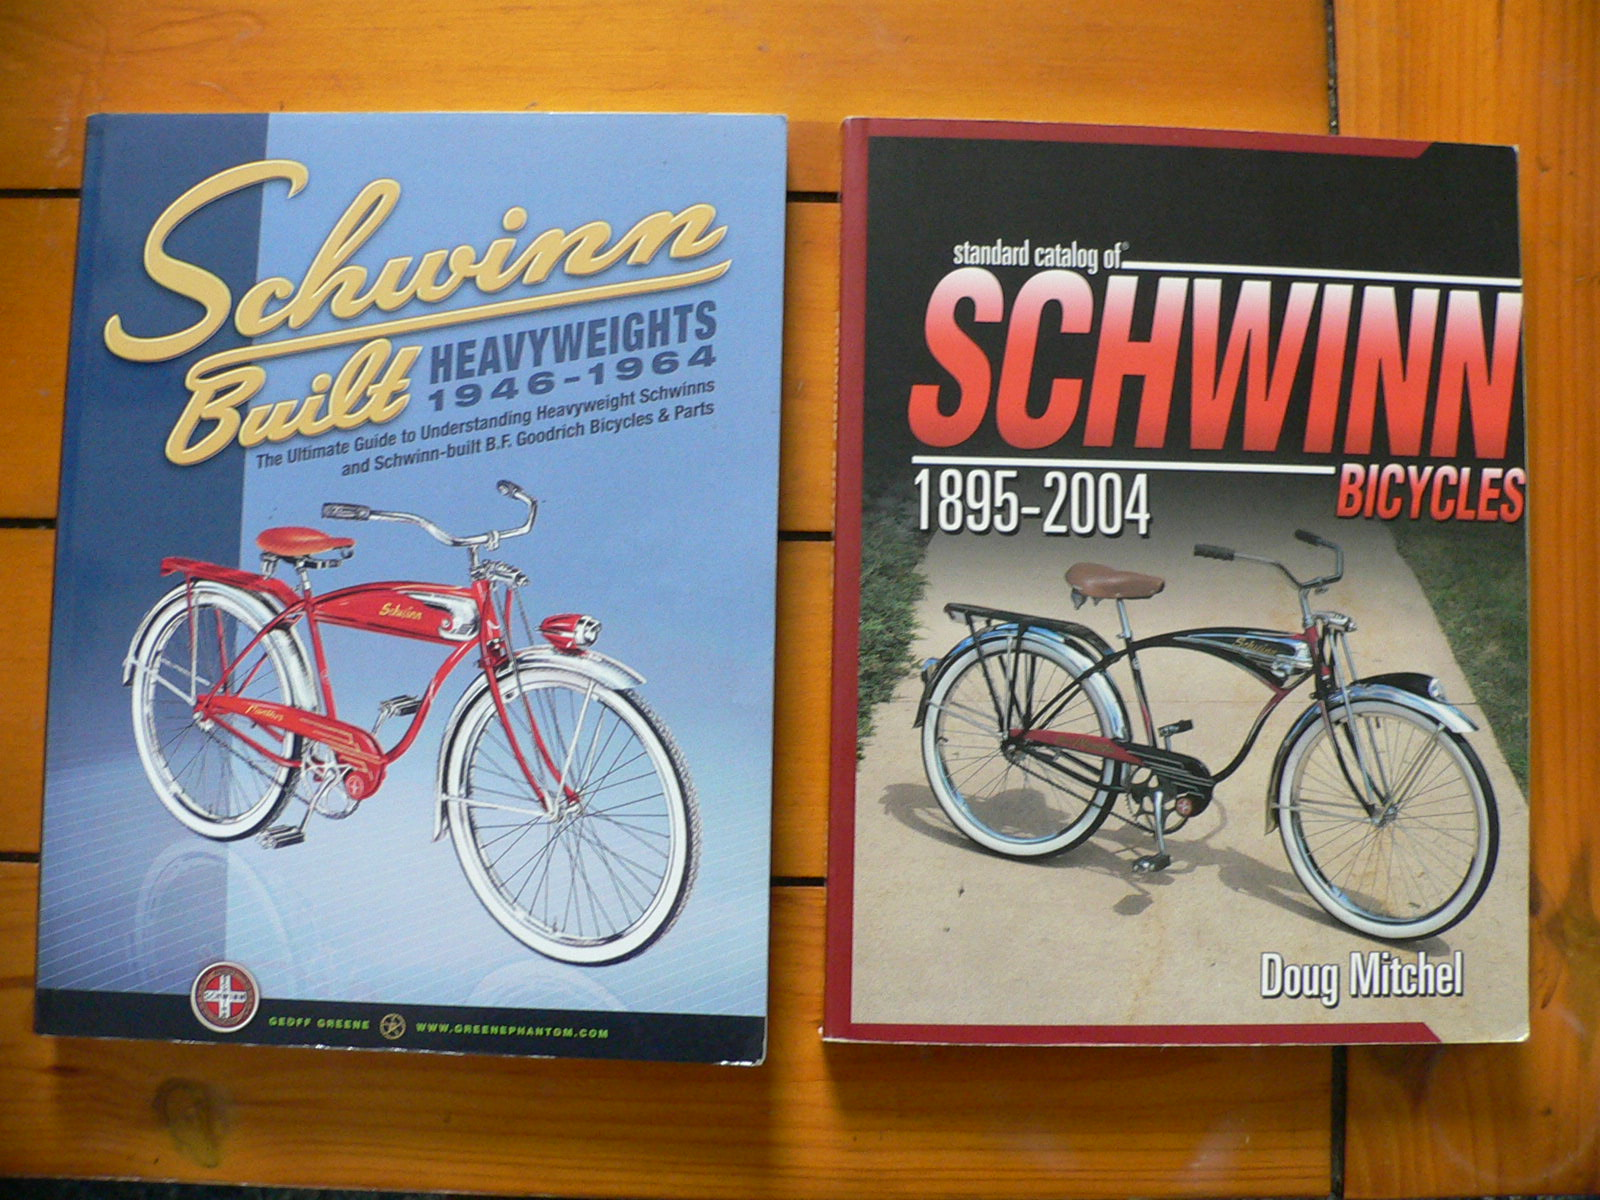 ee376ca8895 Sold - Bicycle books & Ephemera | The Classic and Antique Bicycle ...